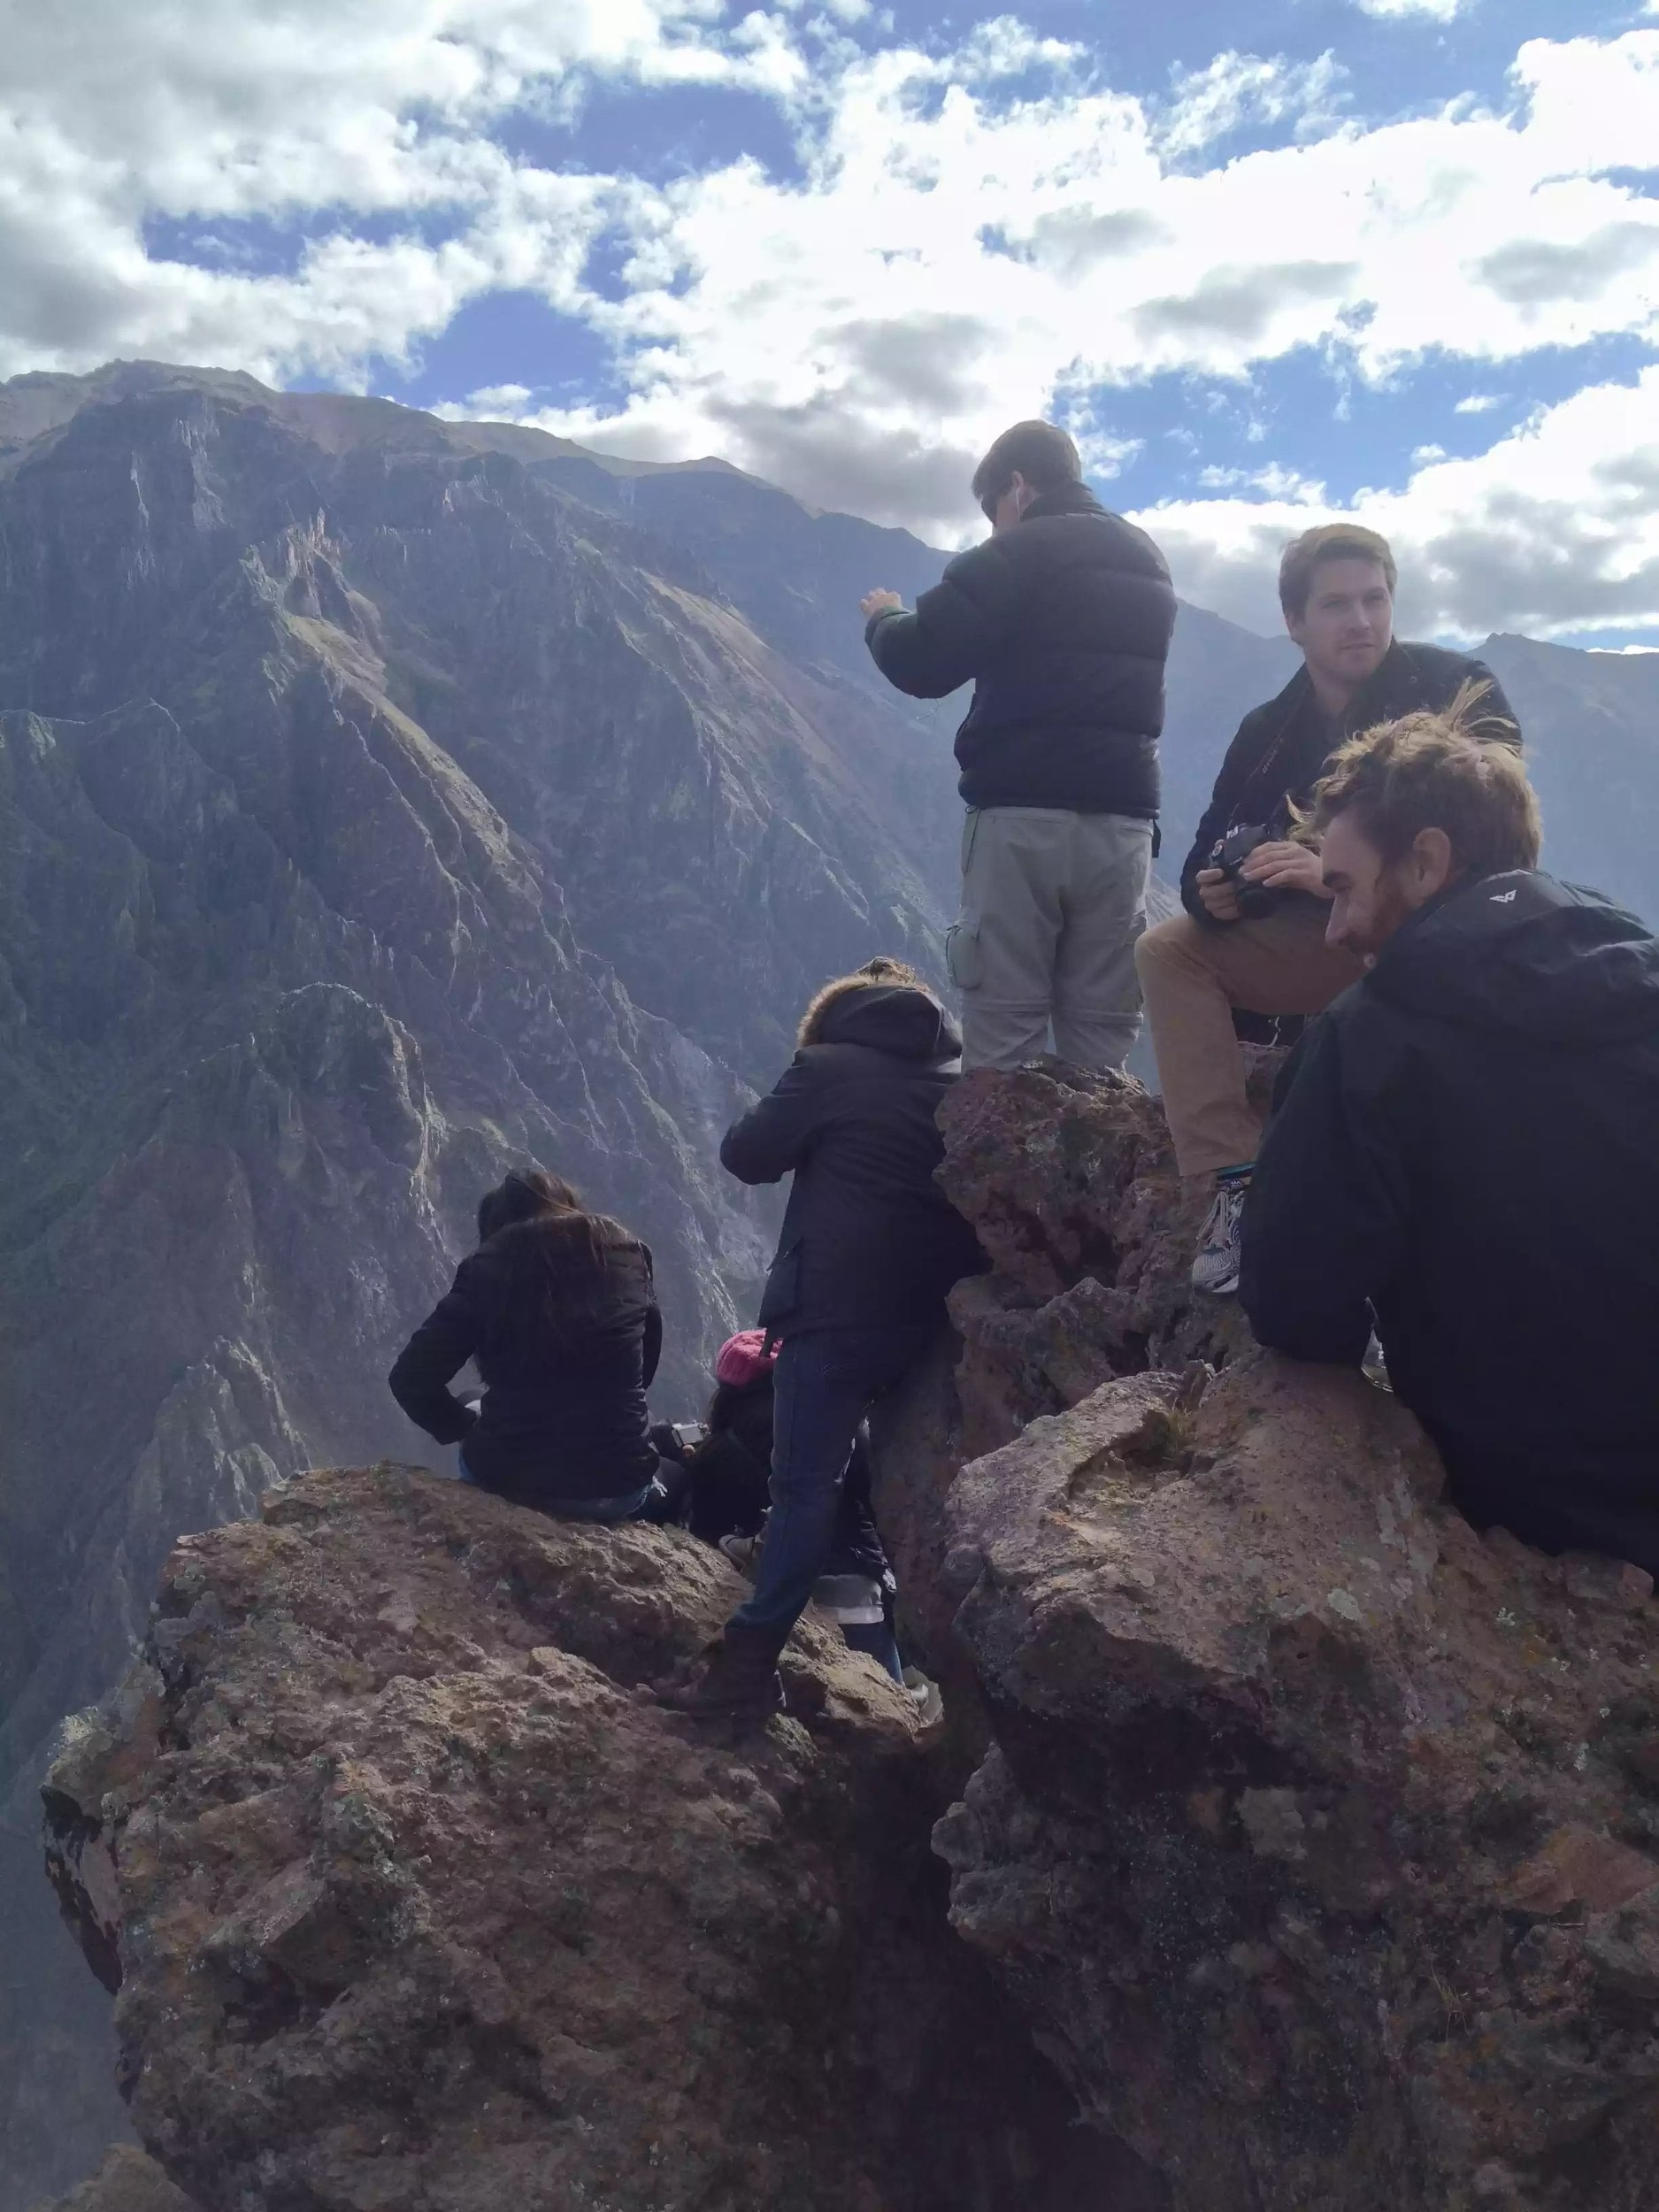 Sitting on the edge of the worlds deepest canyon.